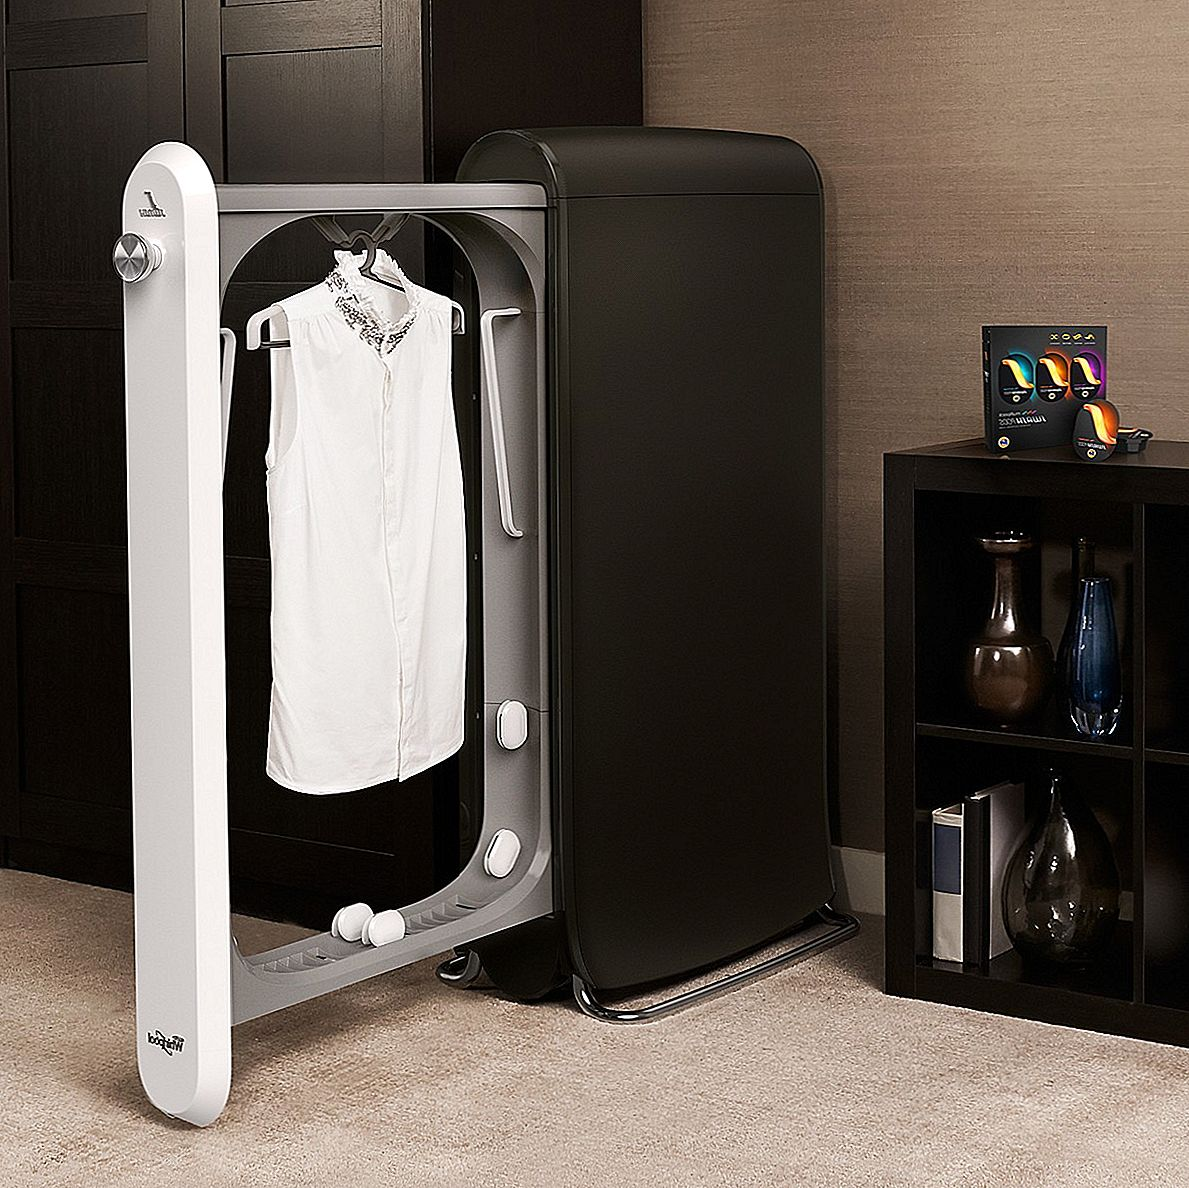 SWASH: The Revolutionary 10-Minute Home Clothing Care System